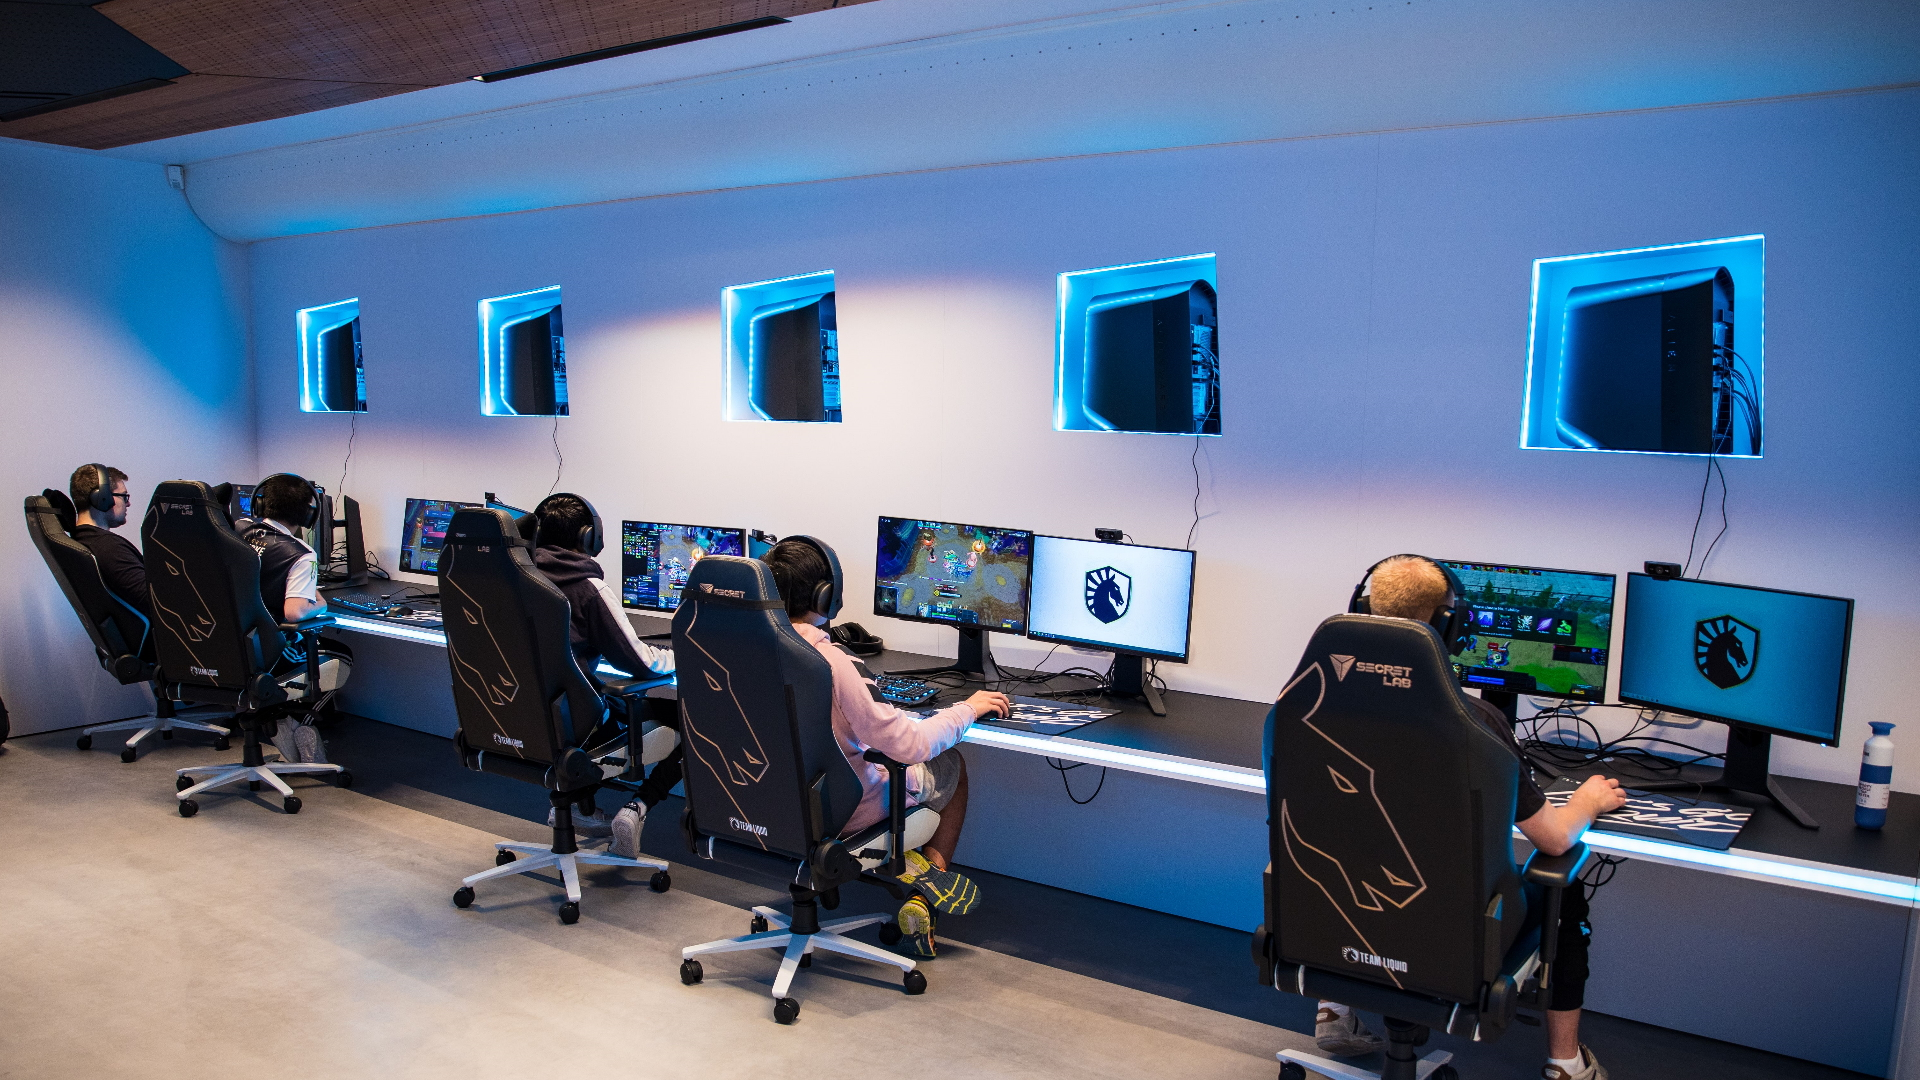 How to train an esports team: private chefs, psychologists, and $452,000 worth of PC hardware